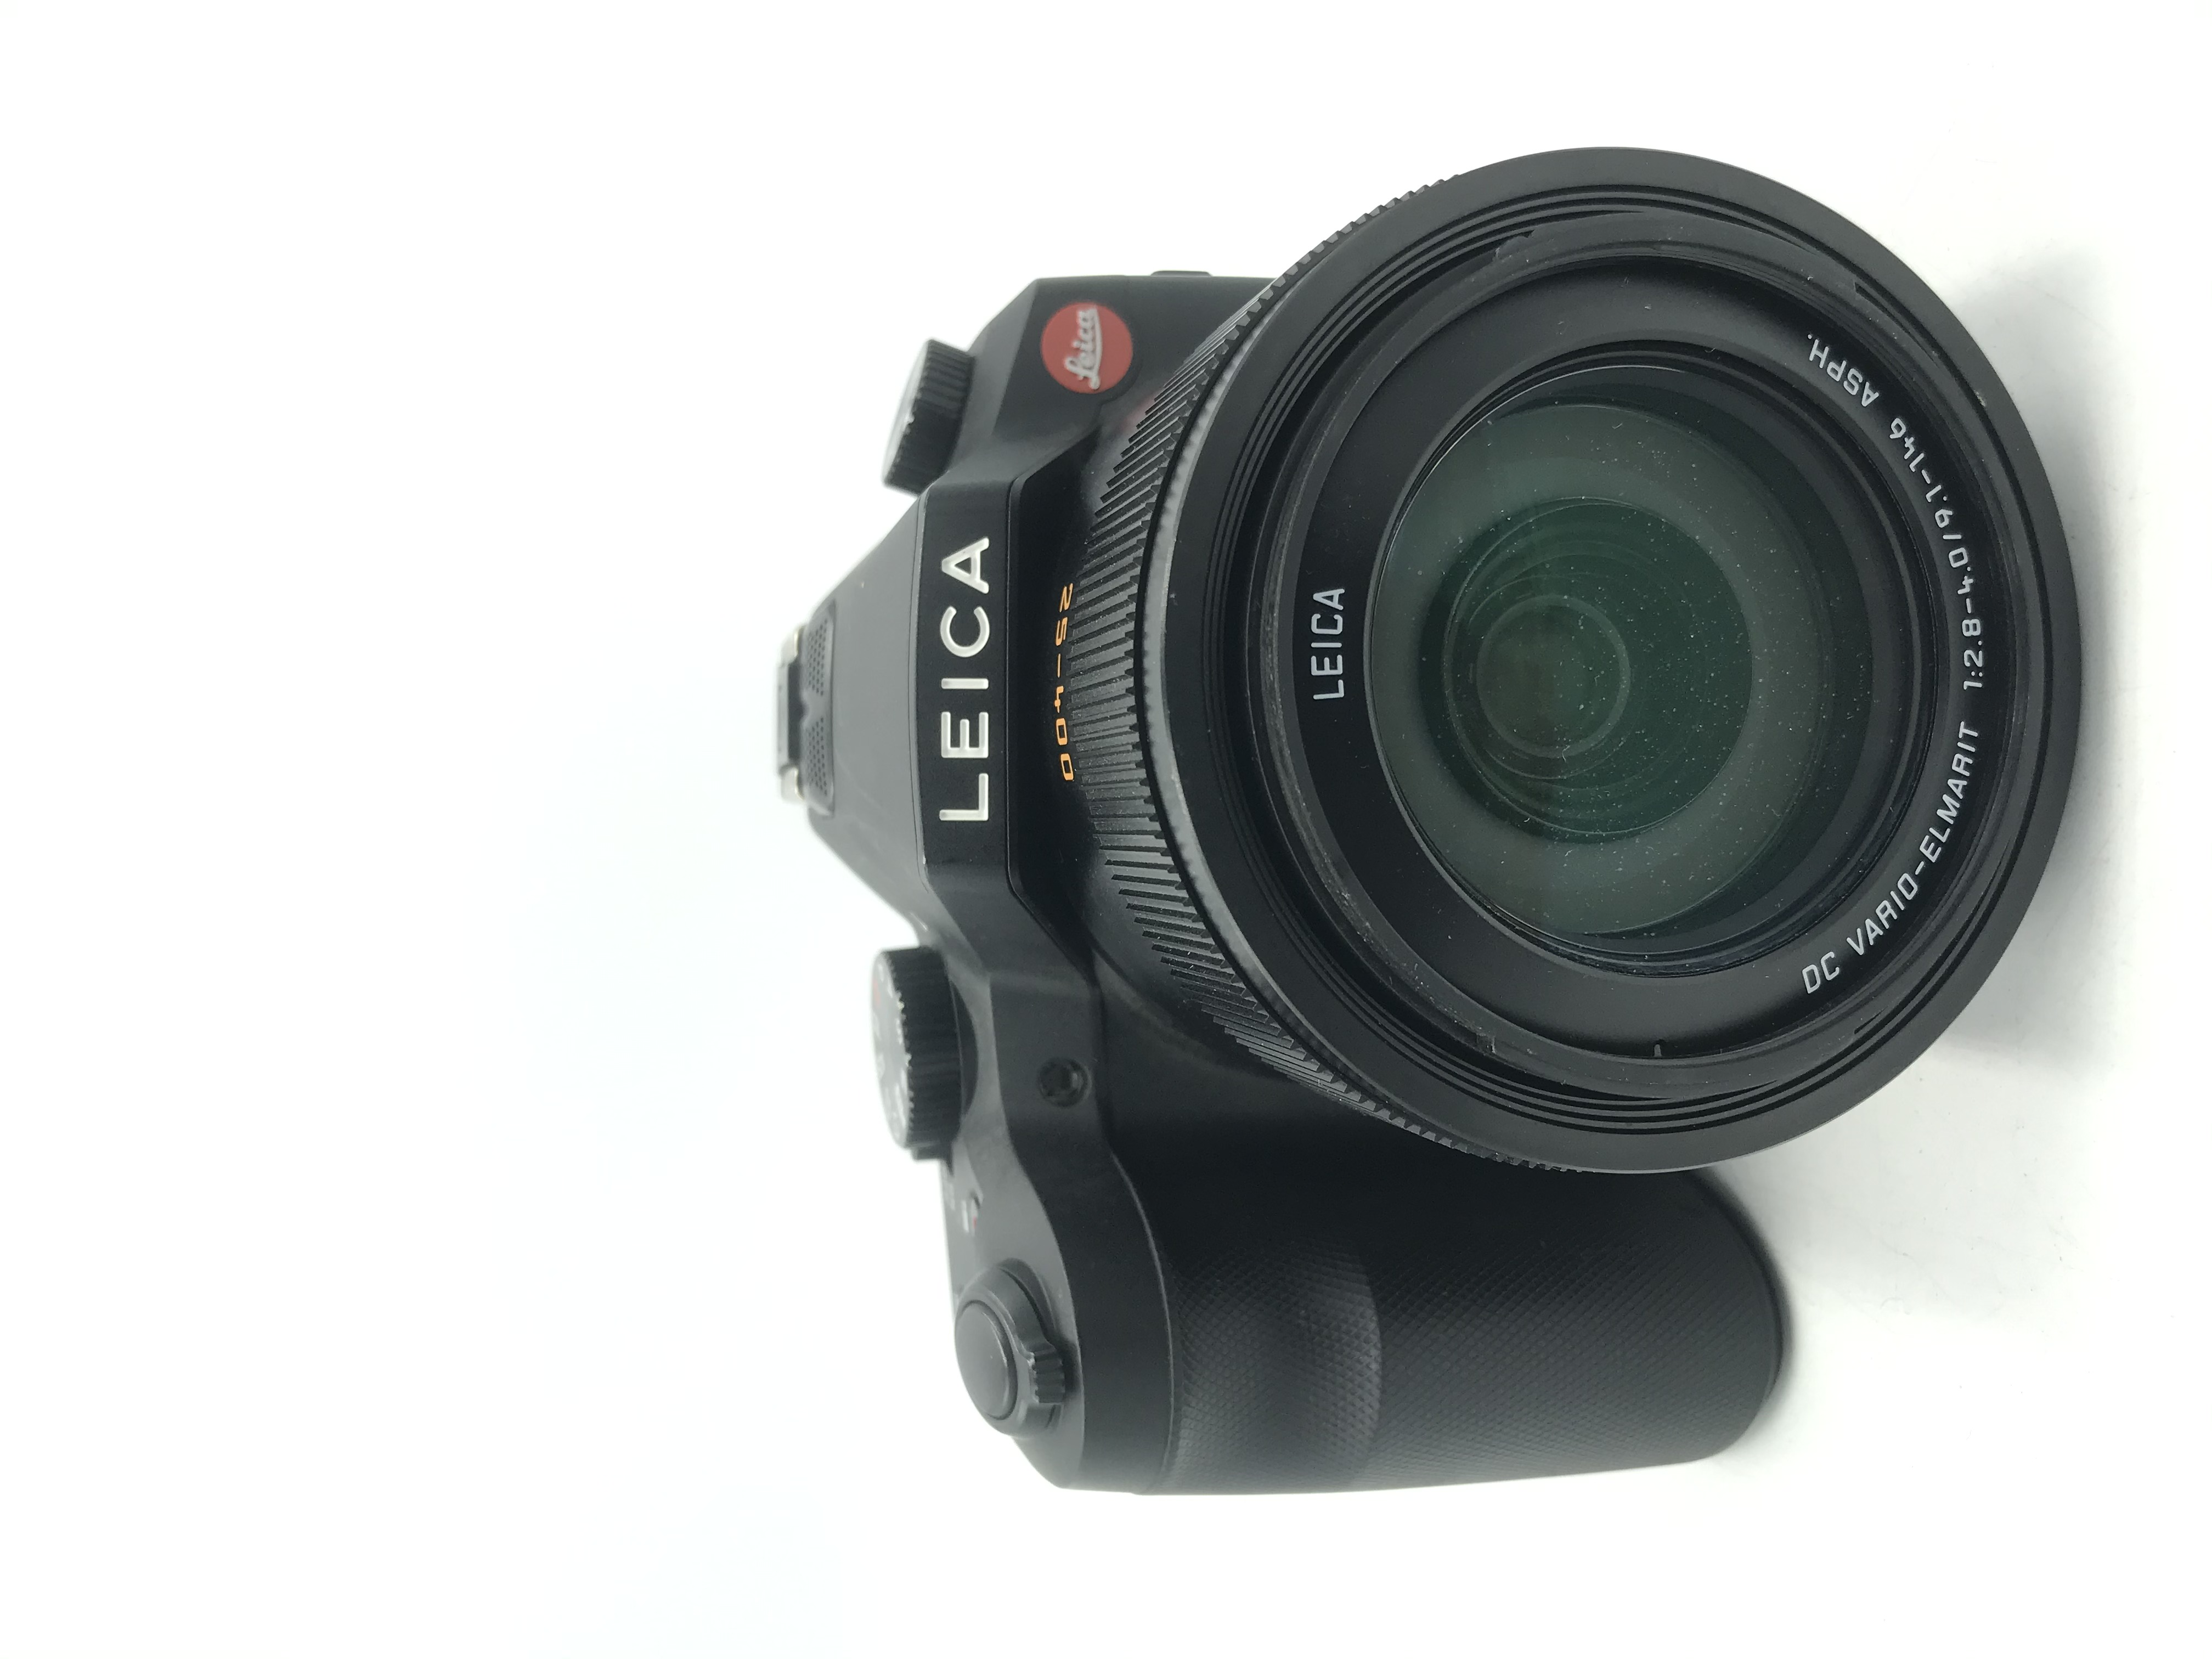 USED Leica V-Lux (Type 114) Digital Point and Shoot Camera